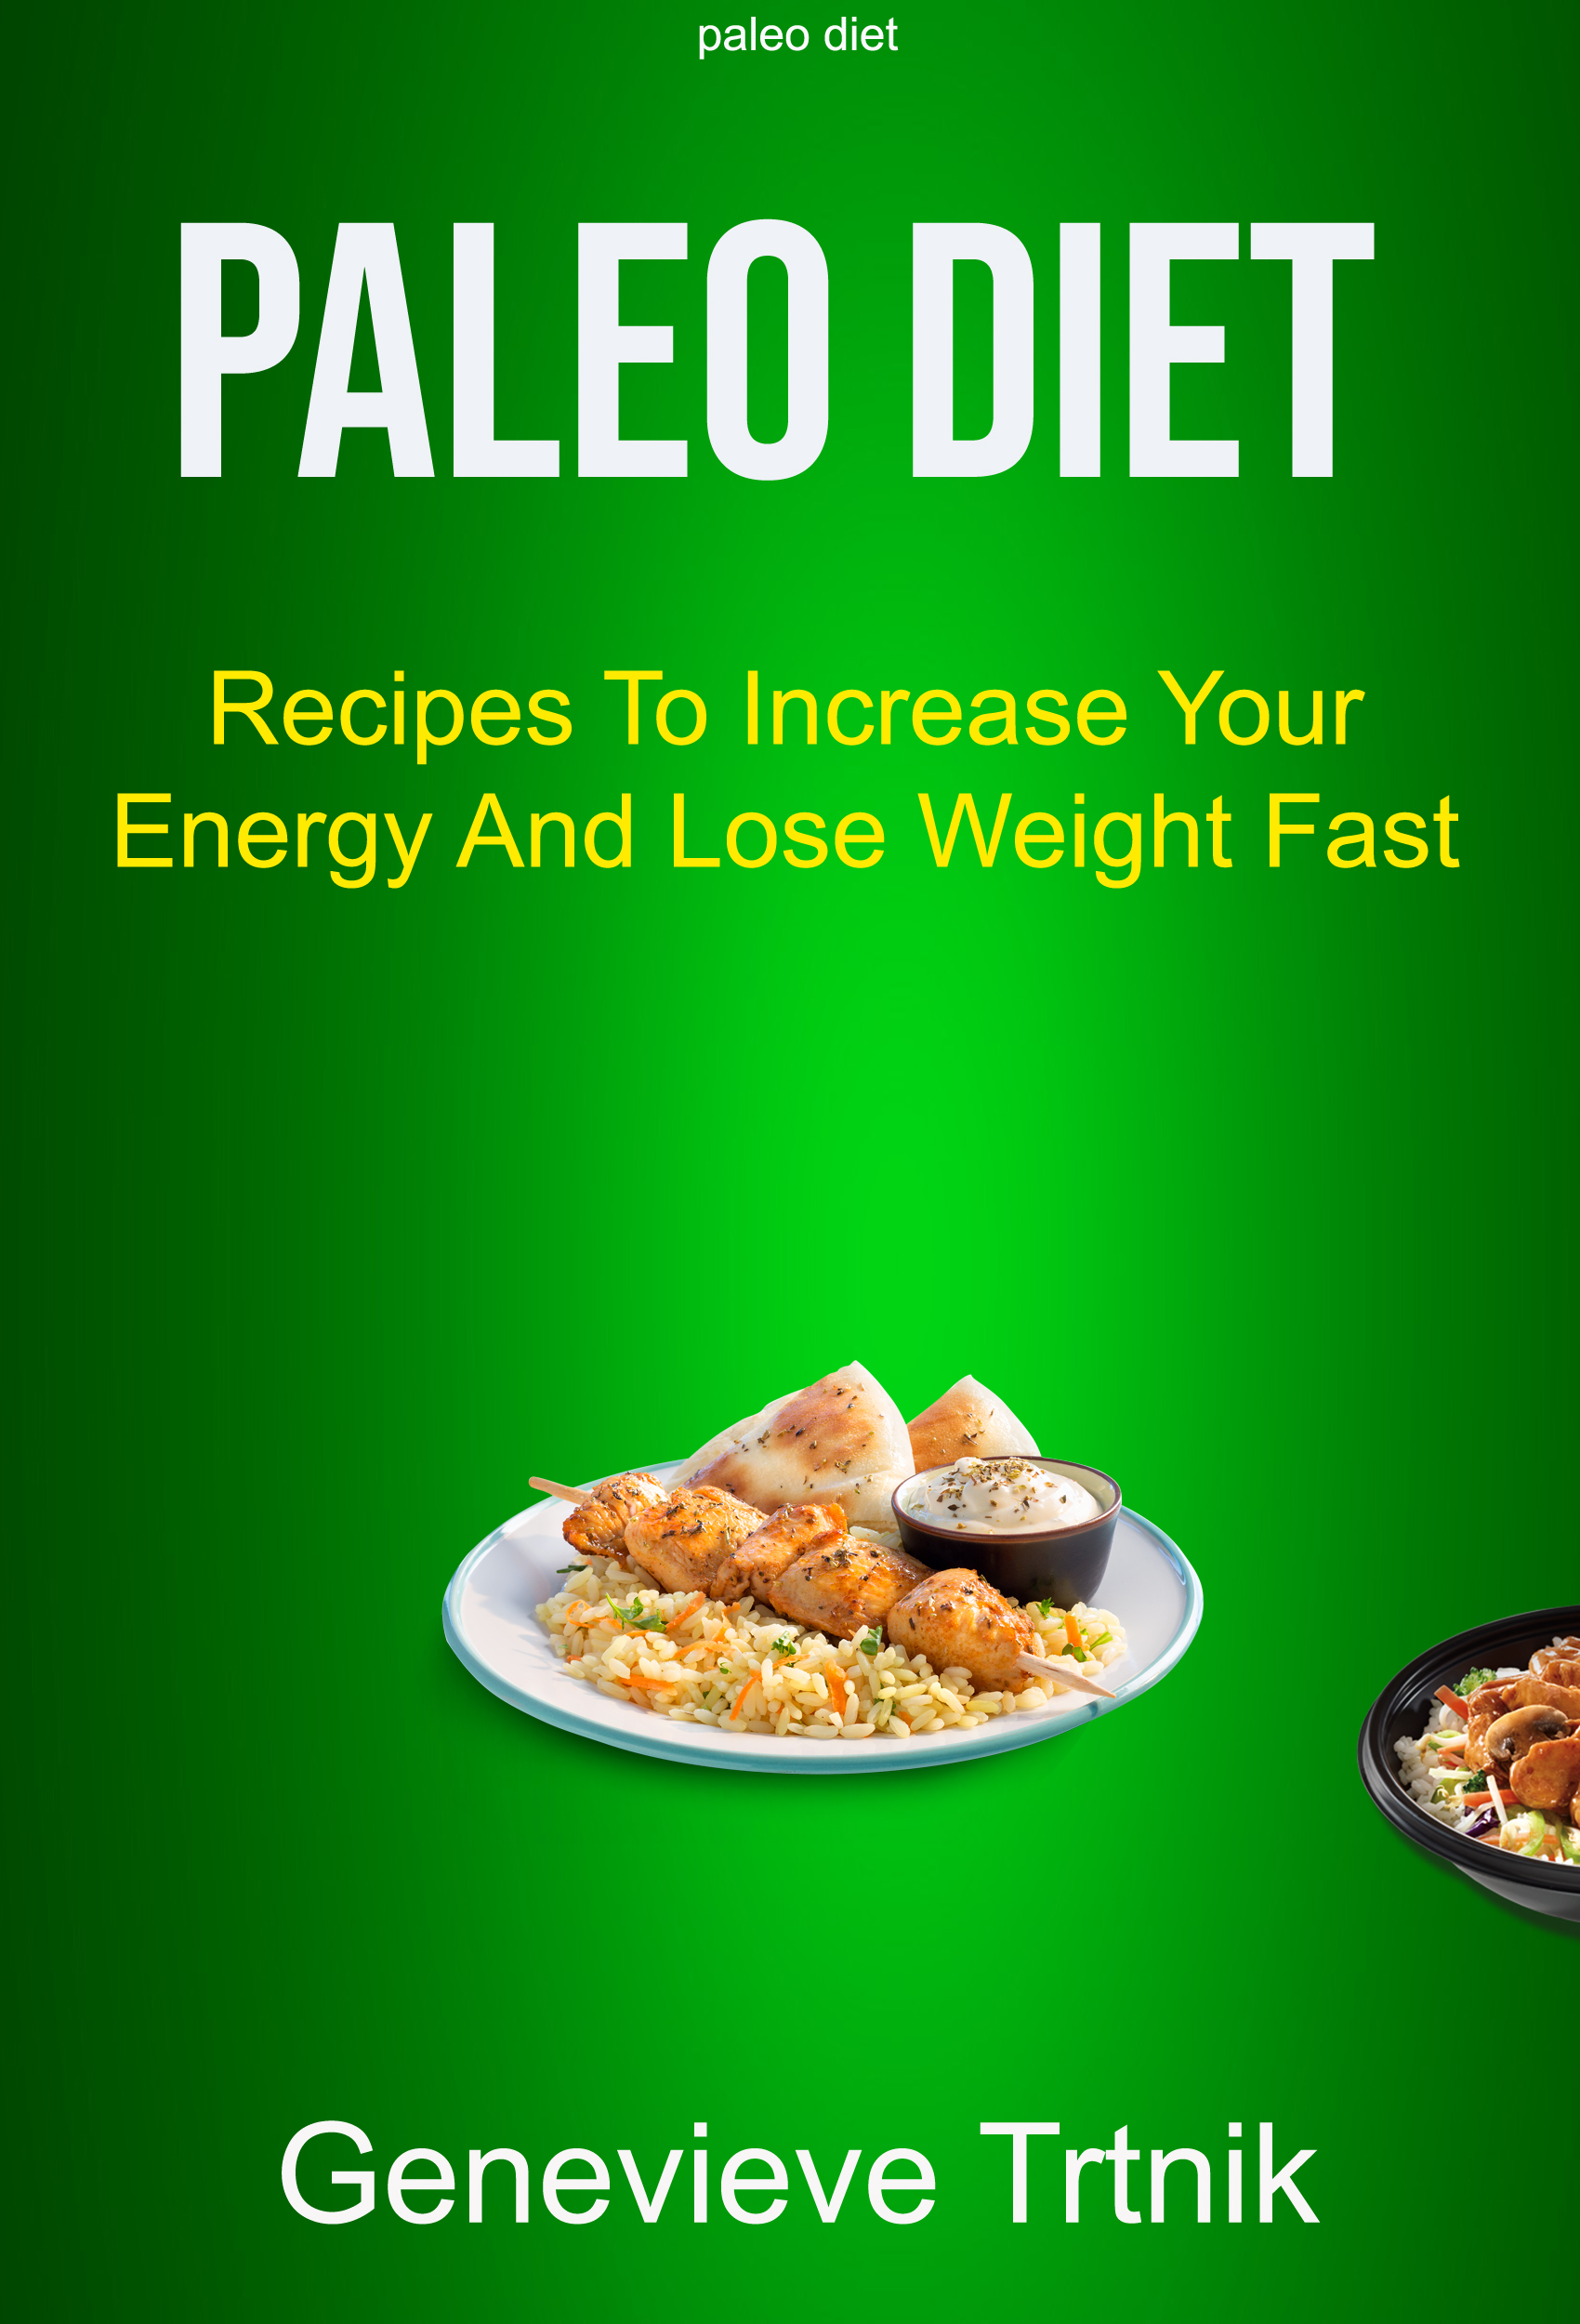 Paleo diet: recipes to increase your energy and lose weight fast